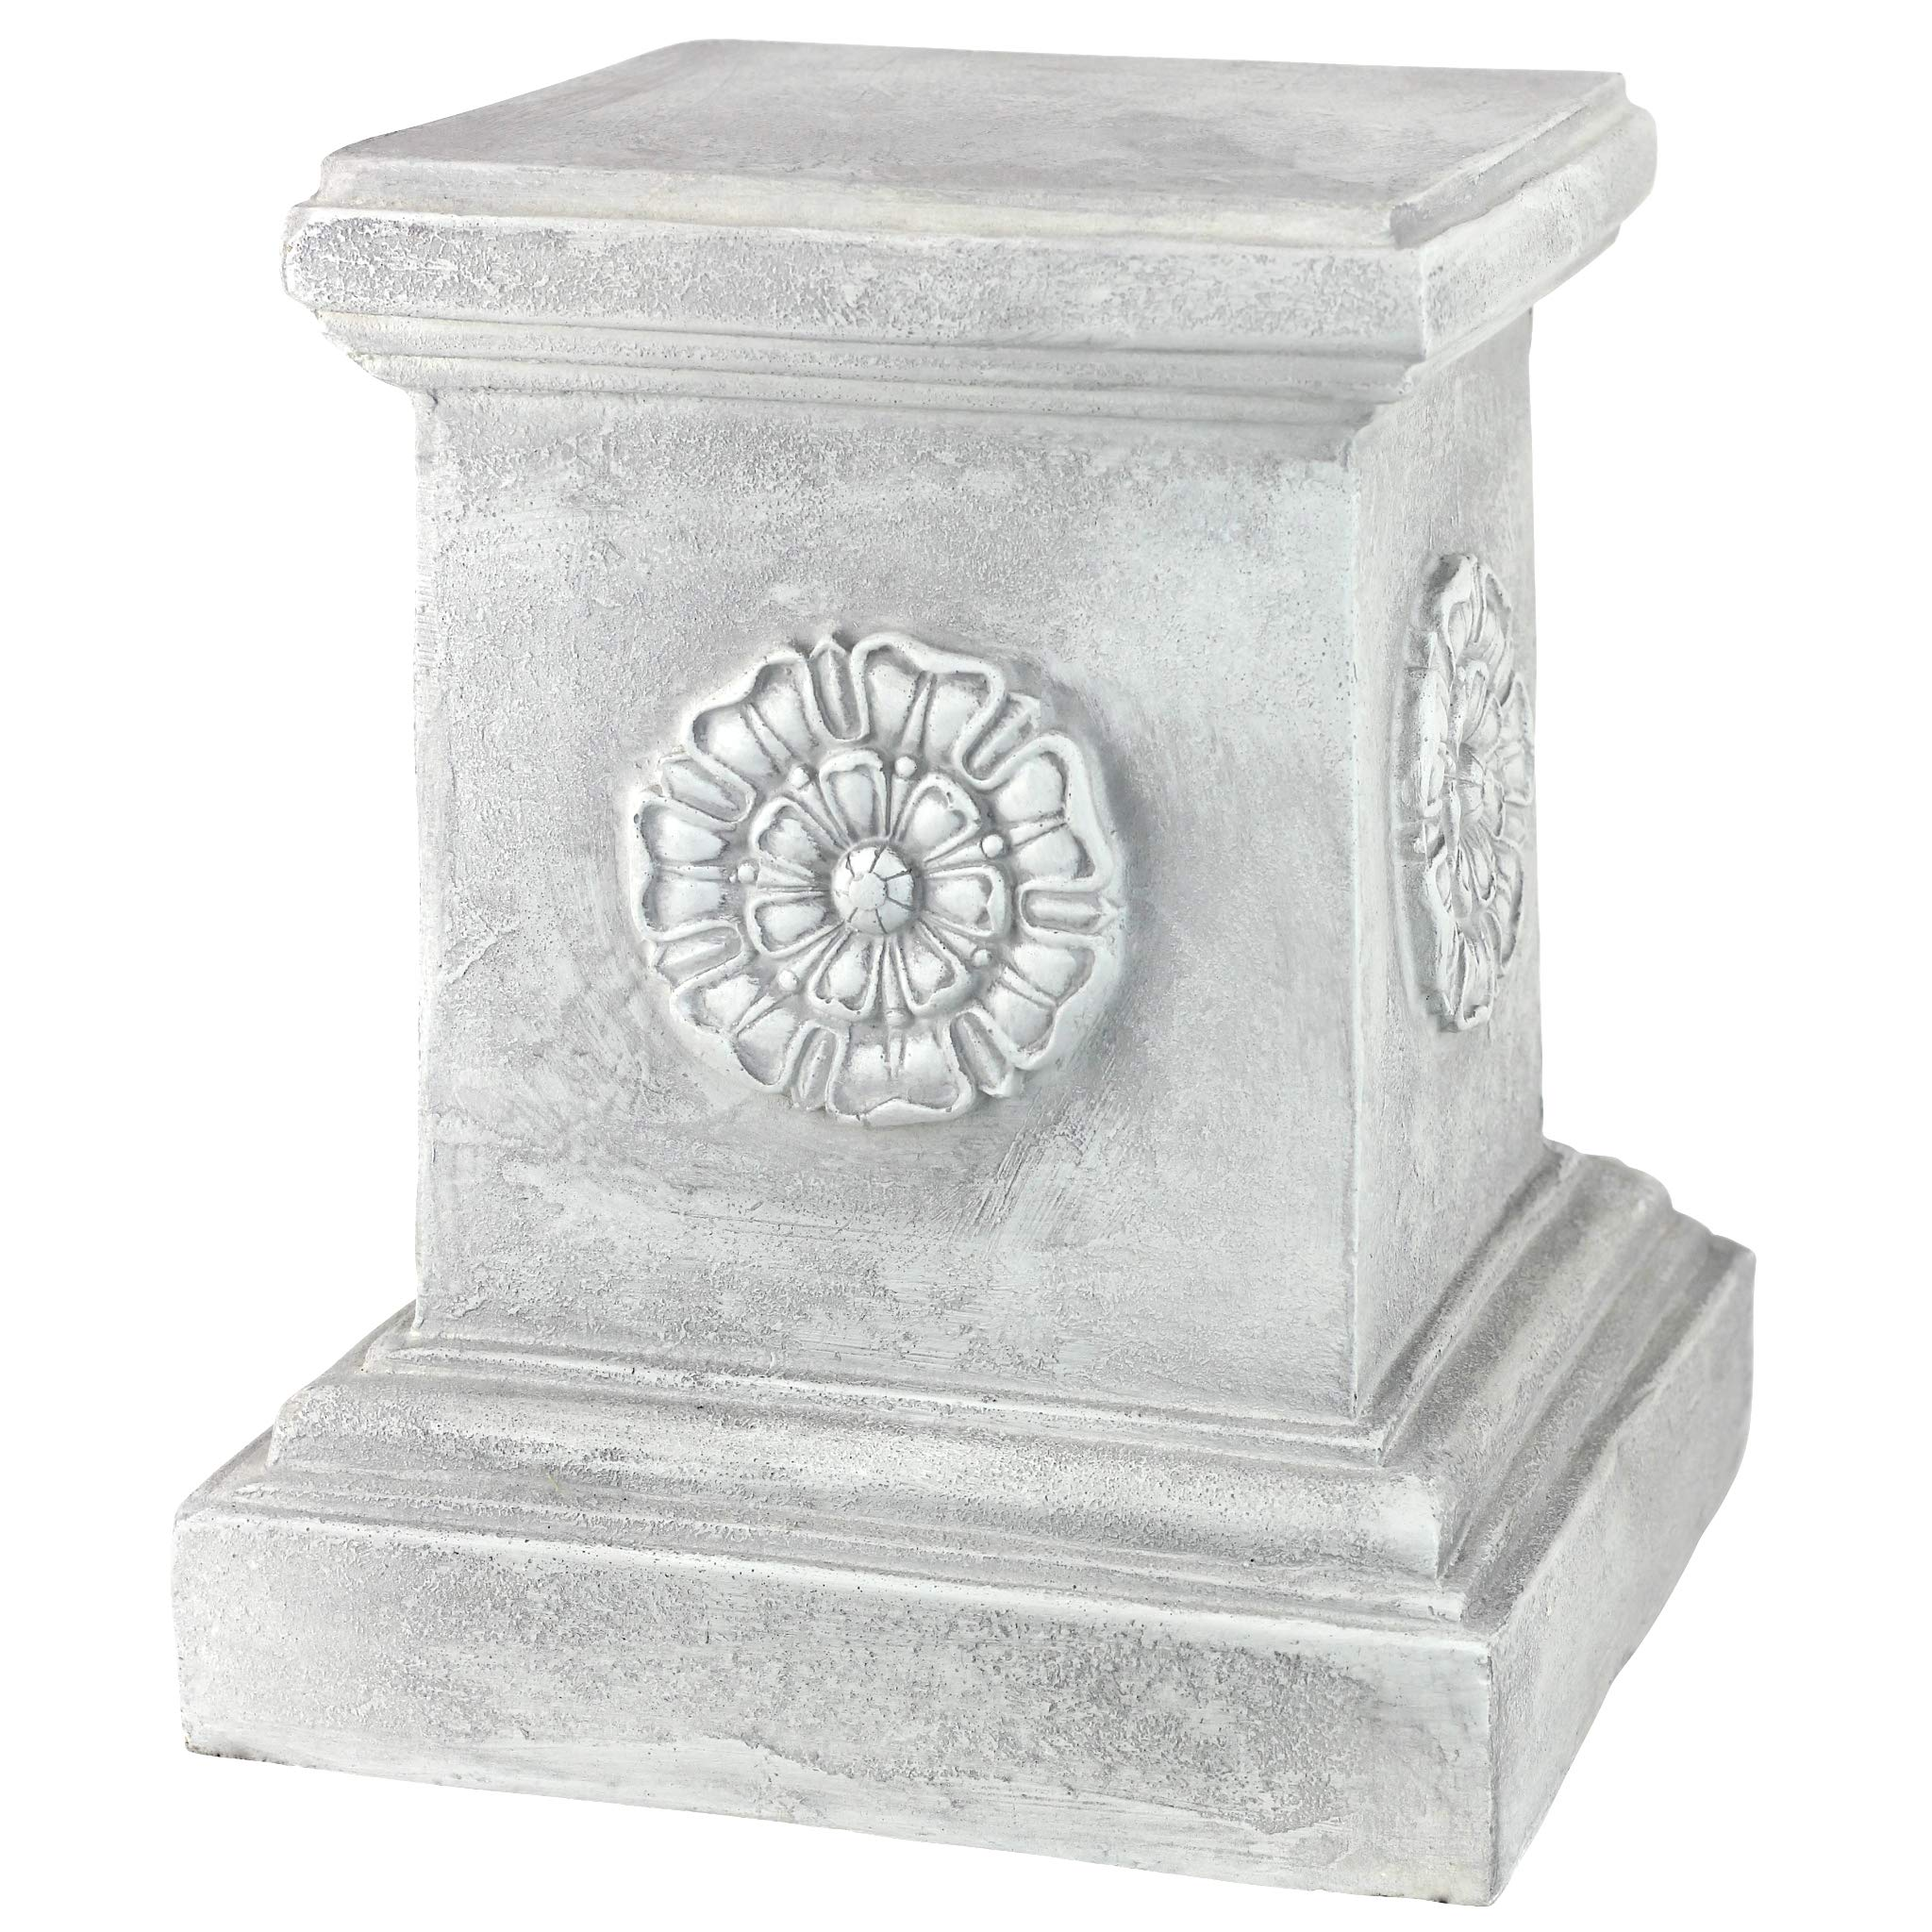 Design Toscano English Rosette Sculptural Garden Plinth Base Riser, Large 13 Inch, Polyresin, Antique Stone by Design Toscano (Image #1)